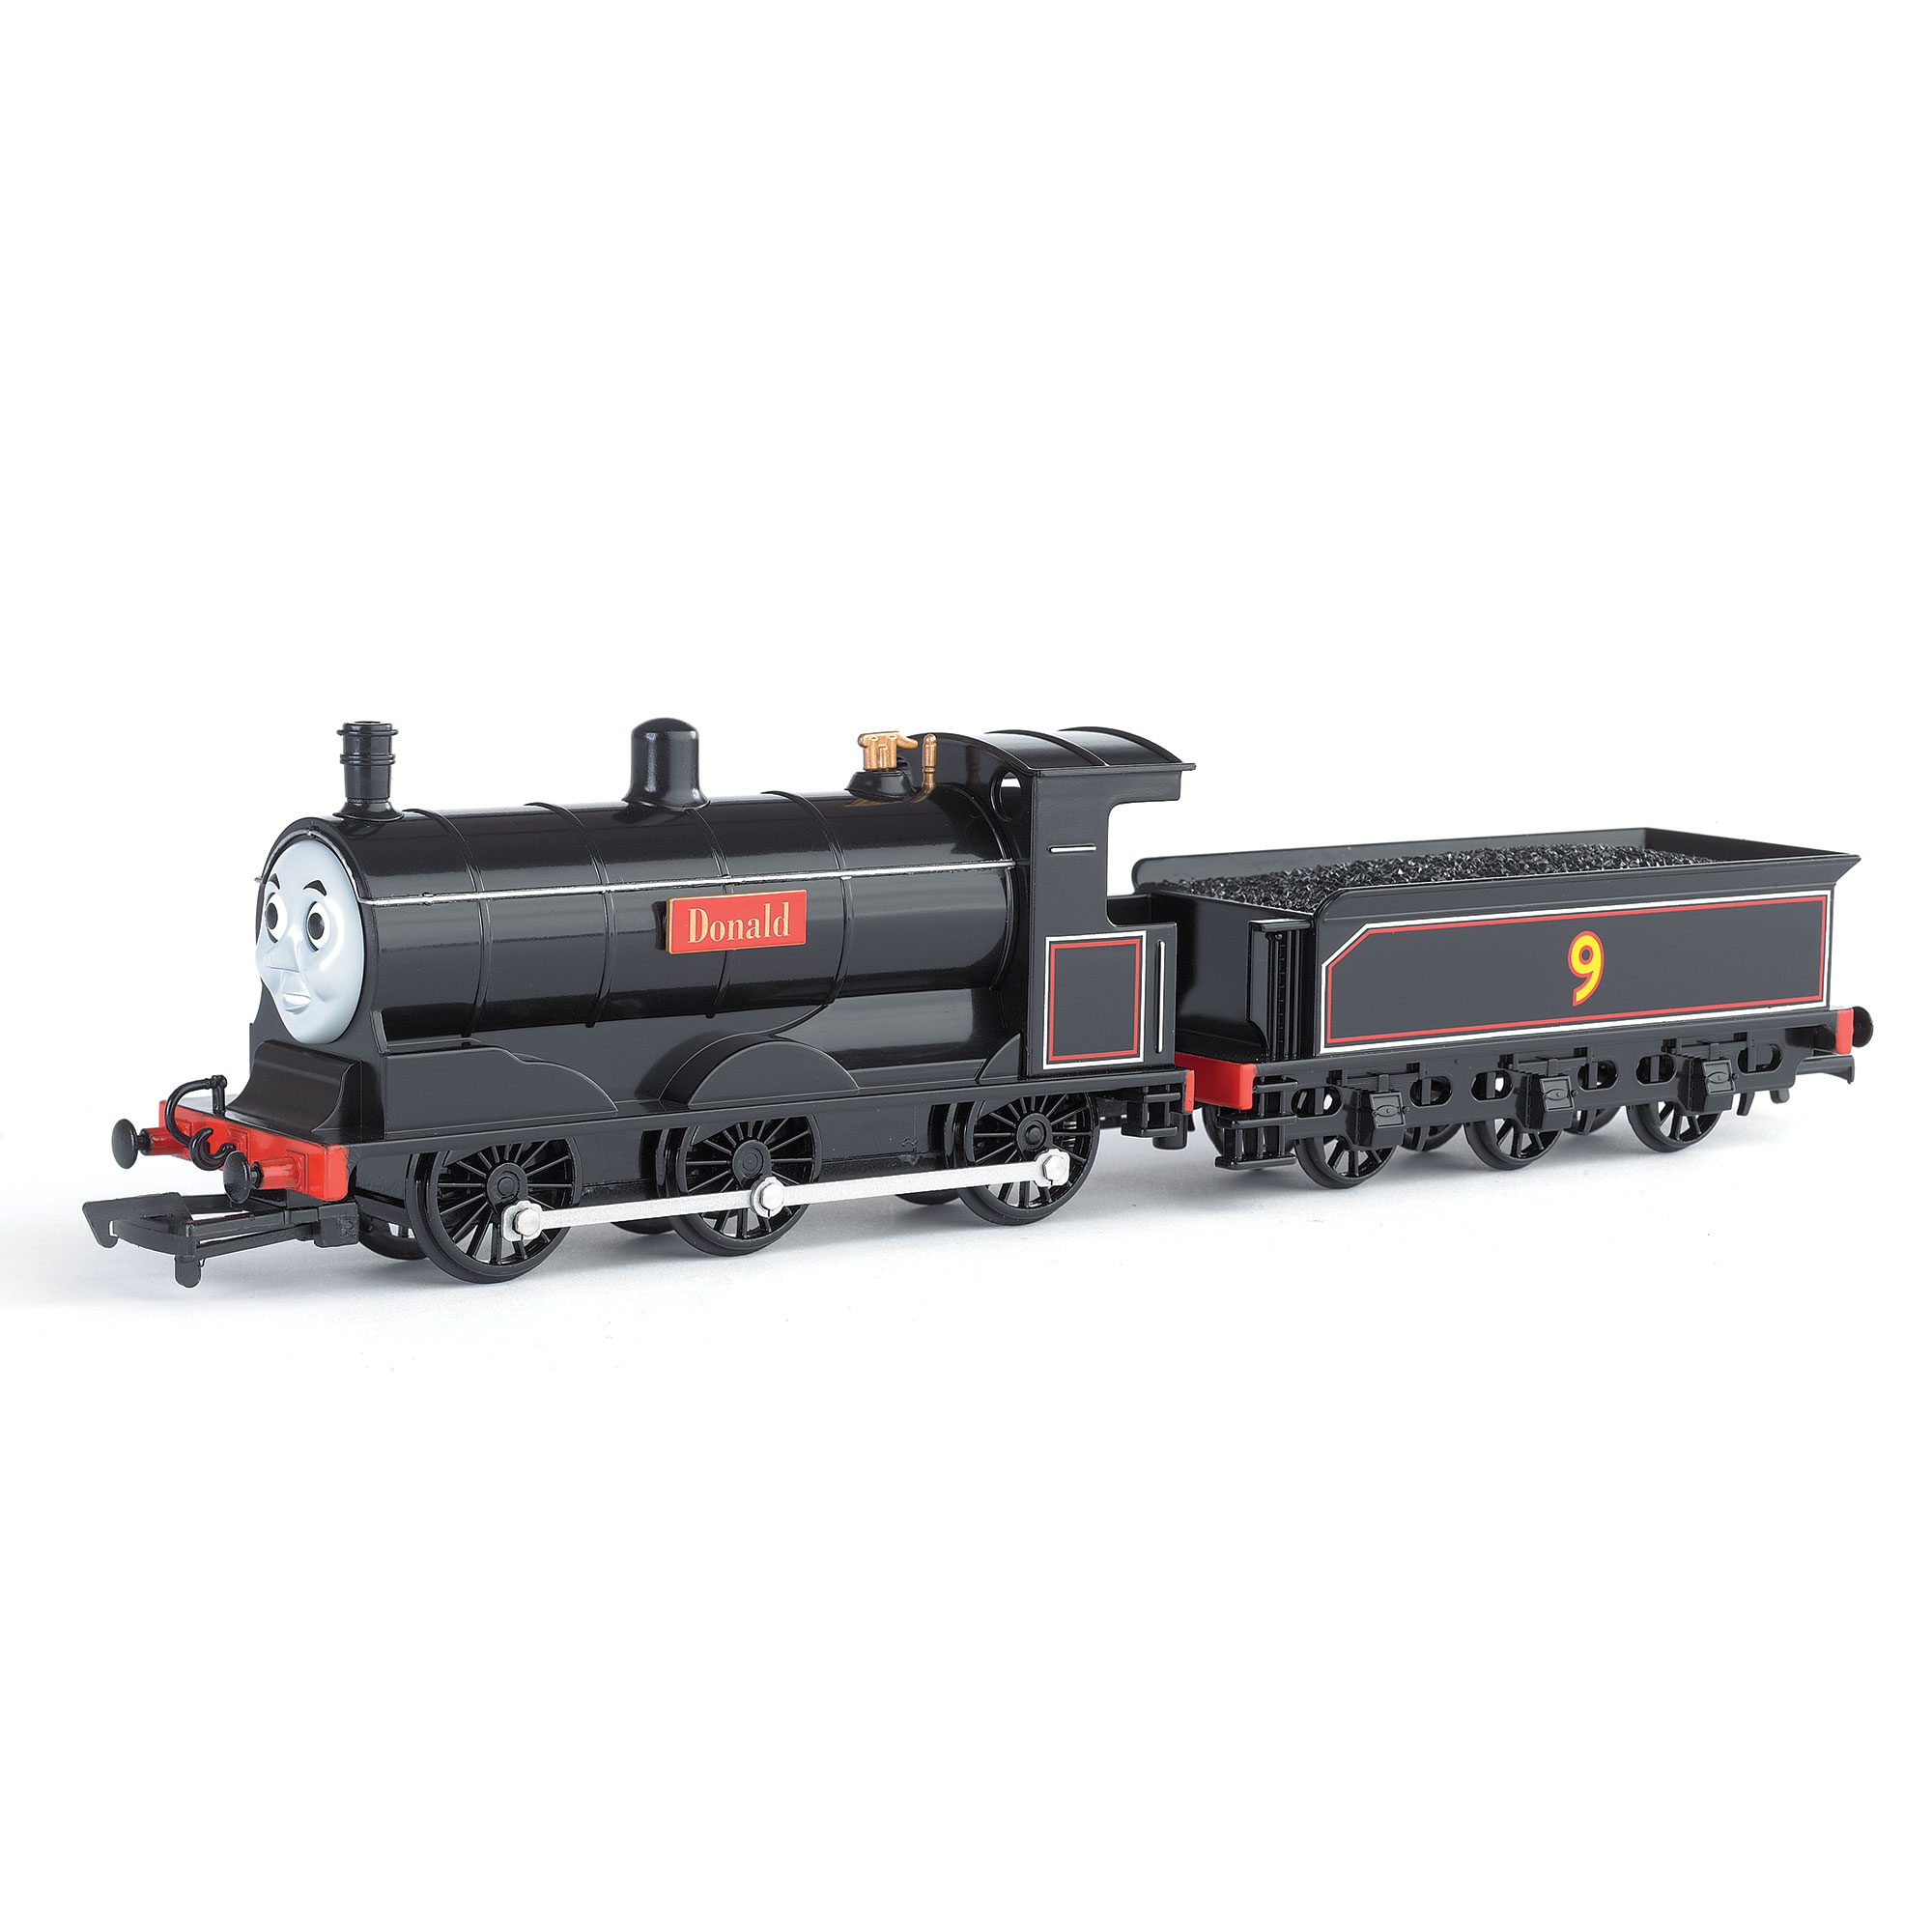 Bachmann Trains Thomas and Friends Donald Locomotive with Moving Eyes, HO Scale Train by Bachmann